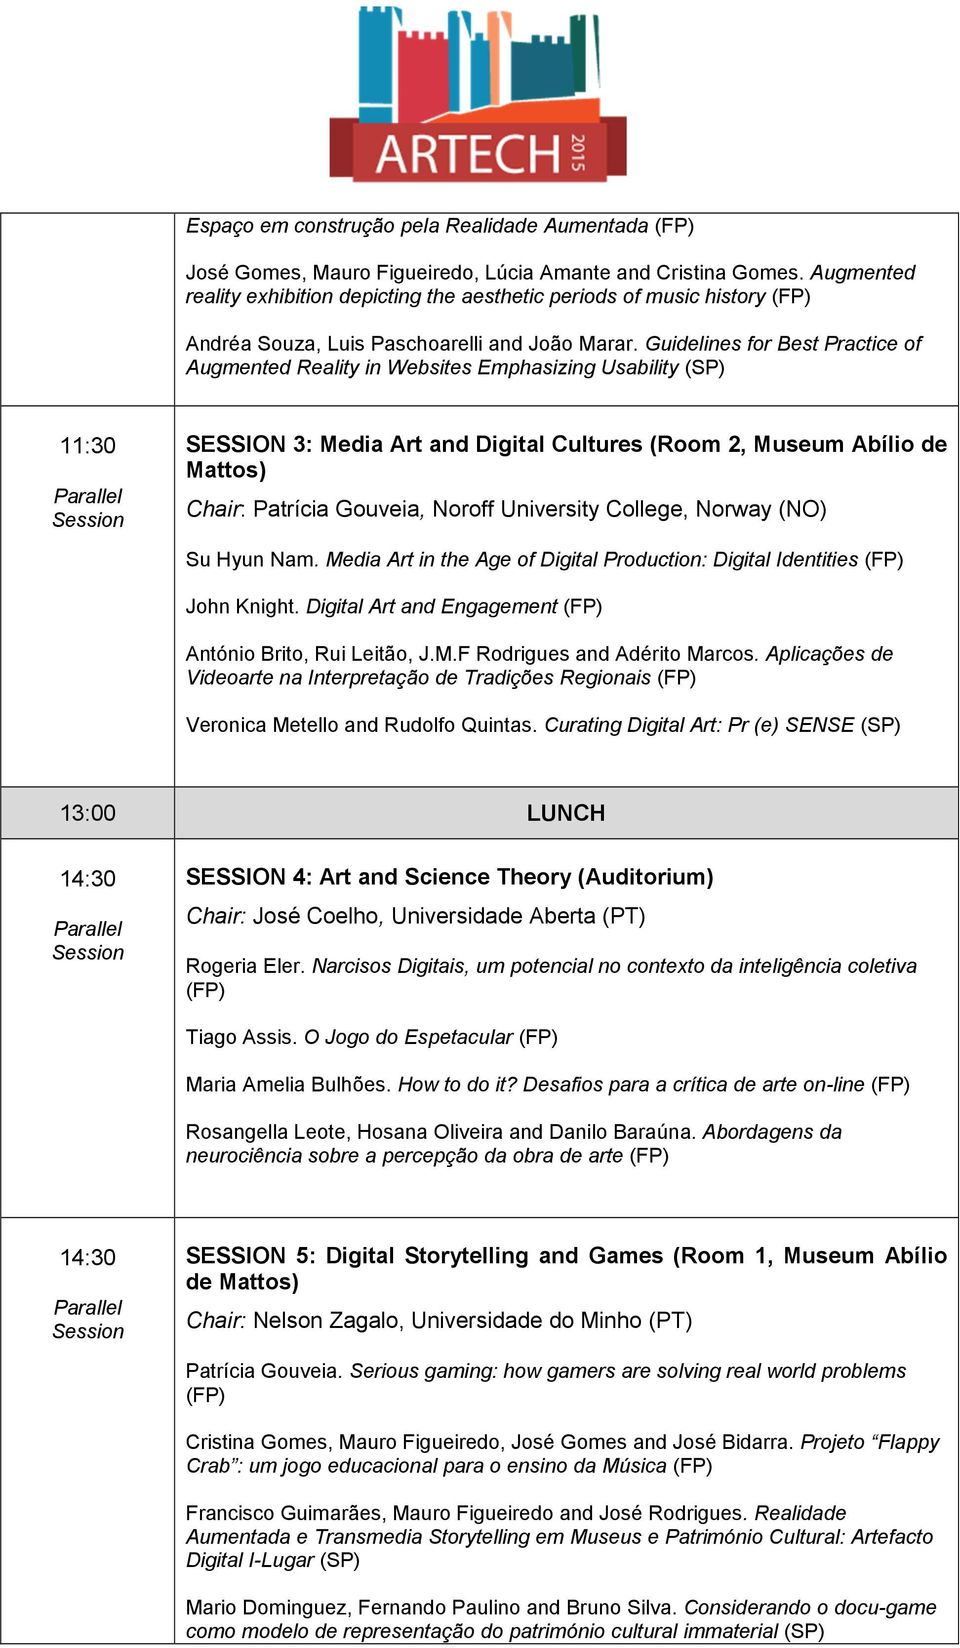 Guidelines for Best Practice of Augmented Reality in Websites Emphasizing Usability (SP) SESSION 3: Media Art and Digital Cultures (Room 2, Museum Abílio de Mattos) Chair: Patrícia Gouveia, Noroff